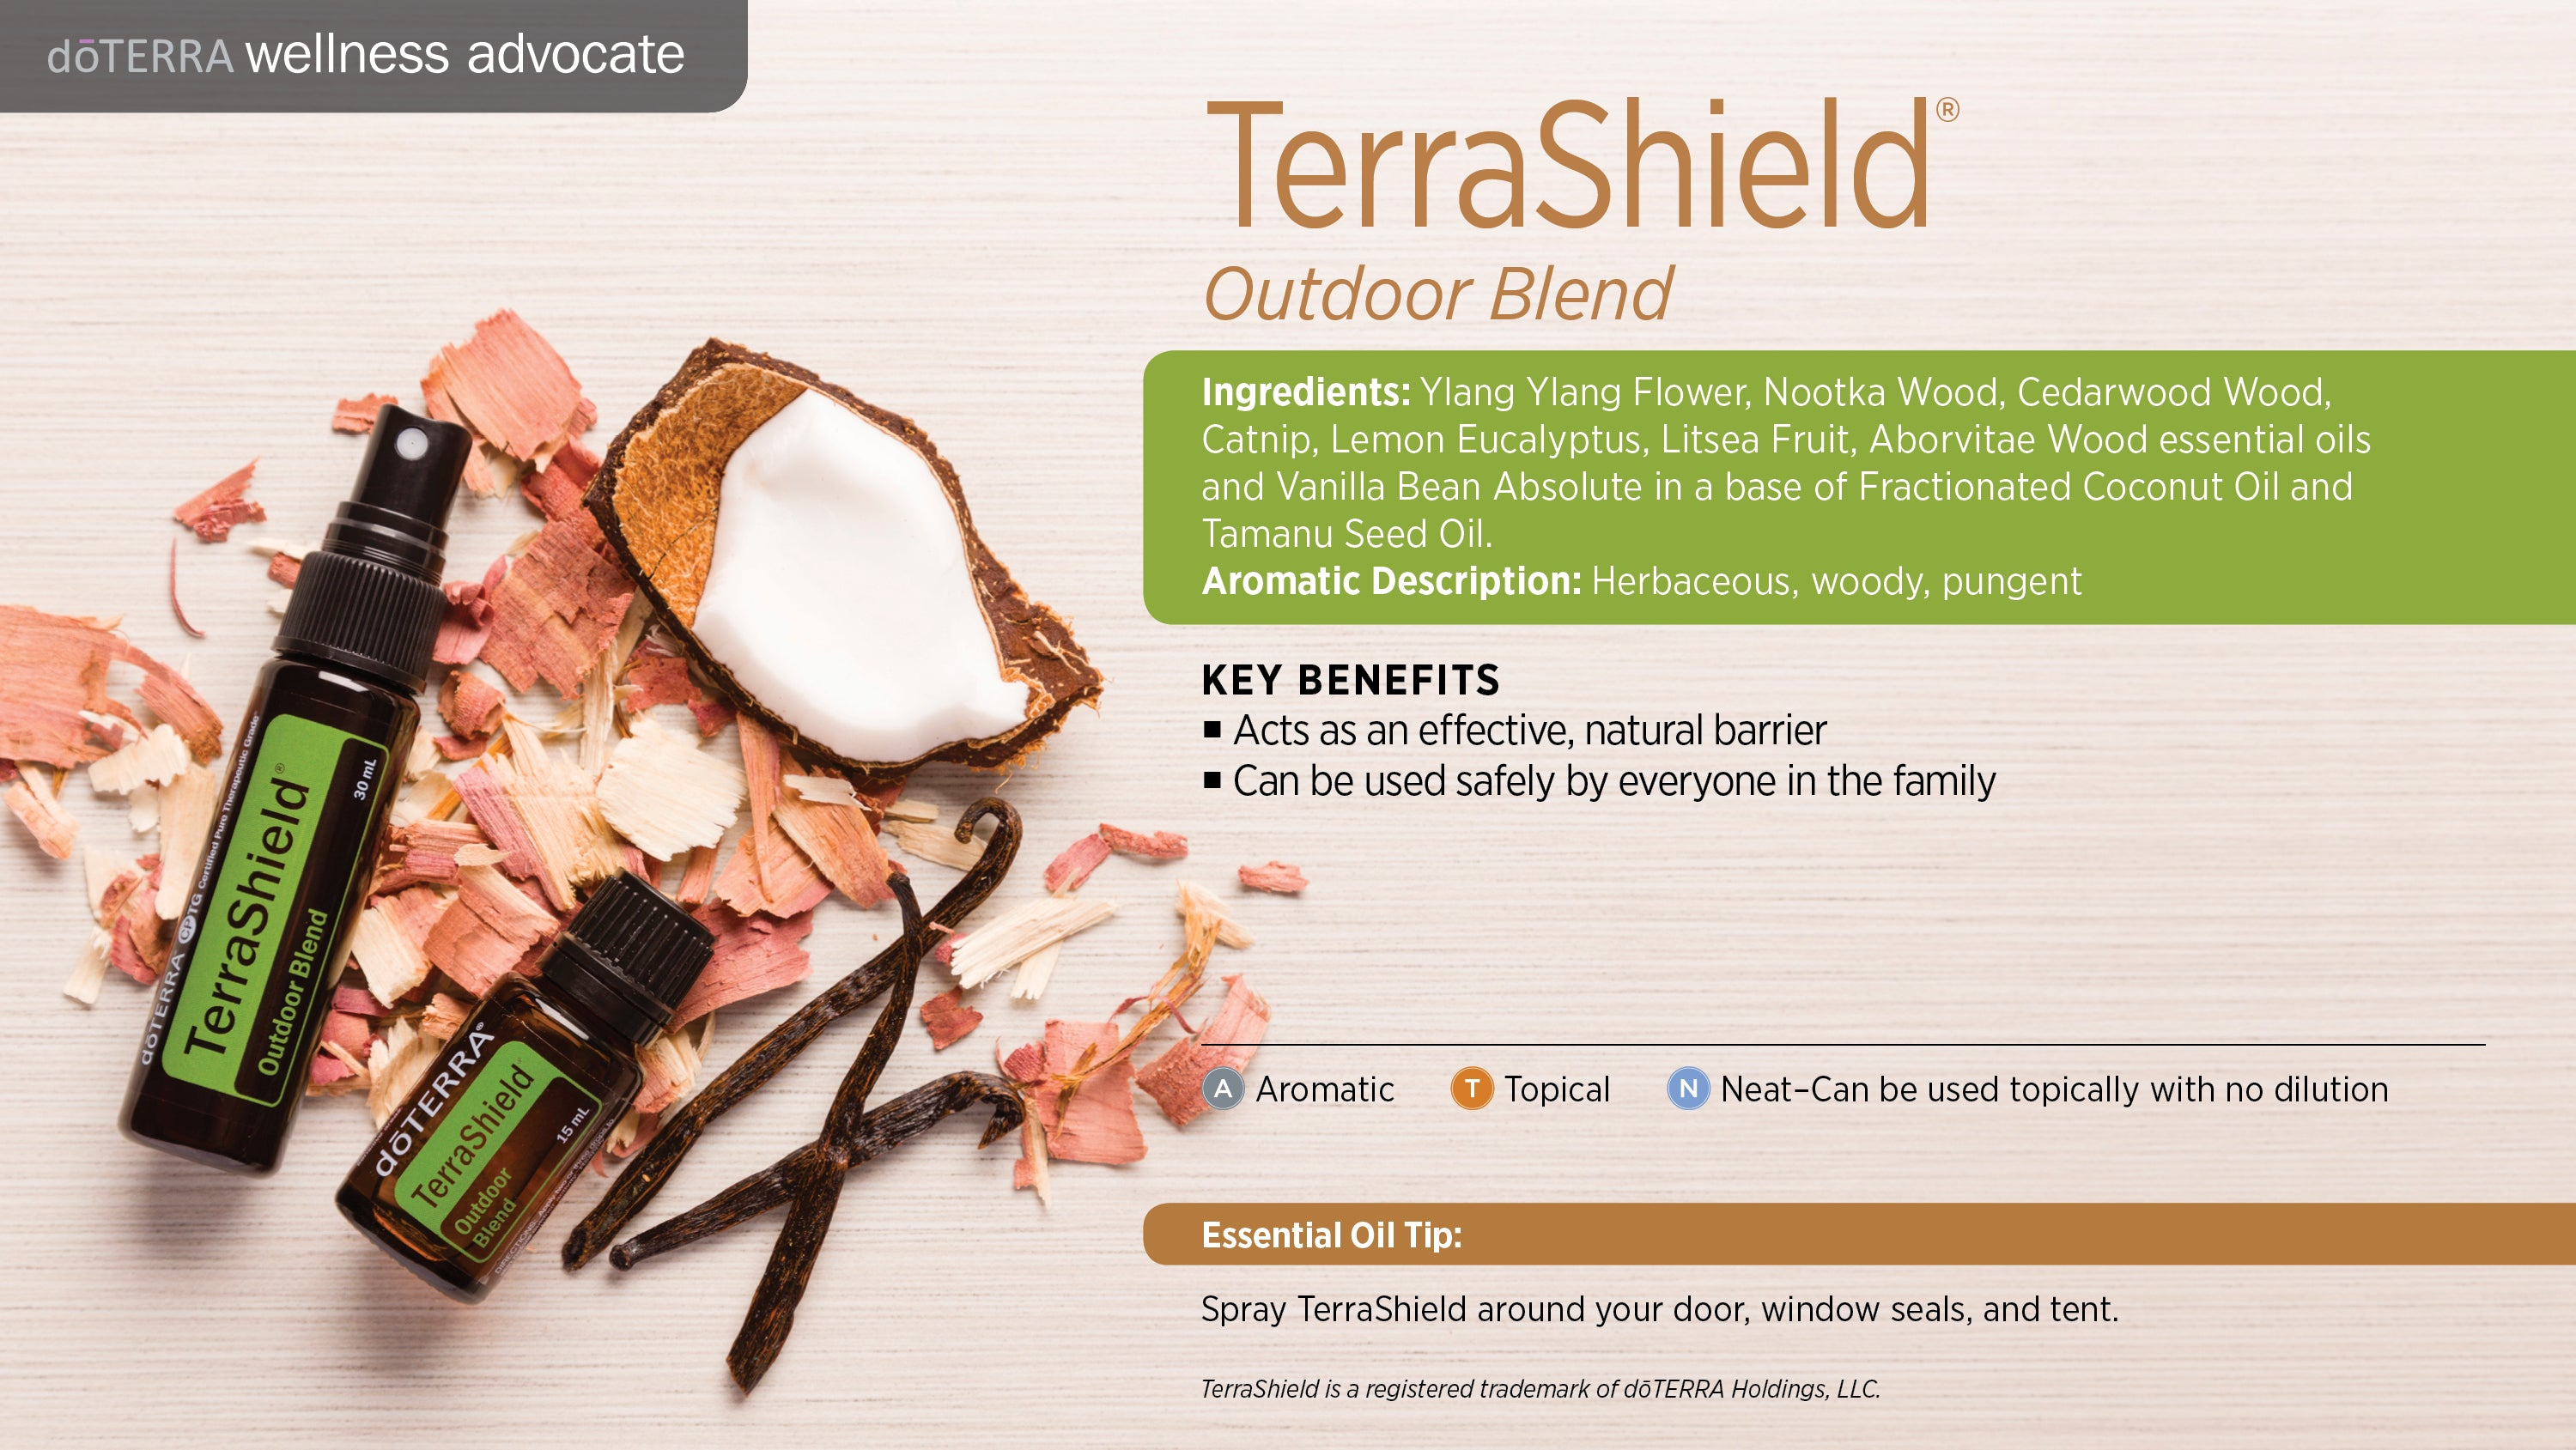 doTERRA TerraShield Outdoor Blend Essential Oil